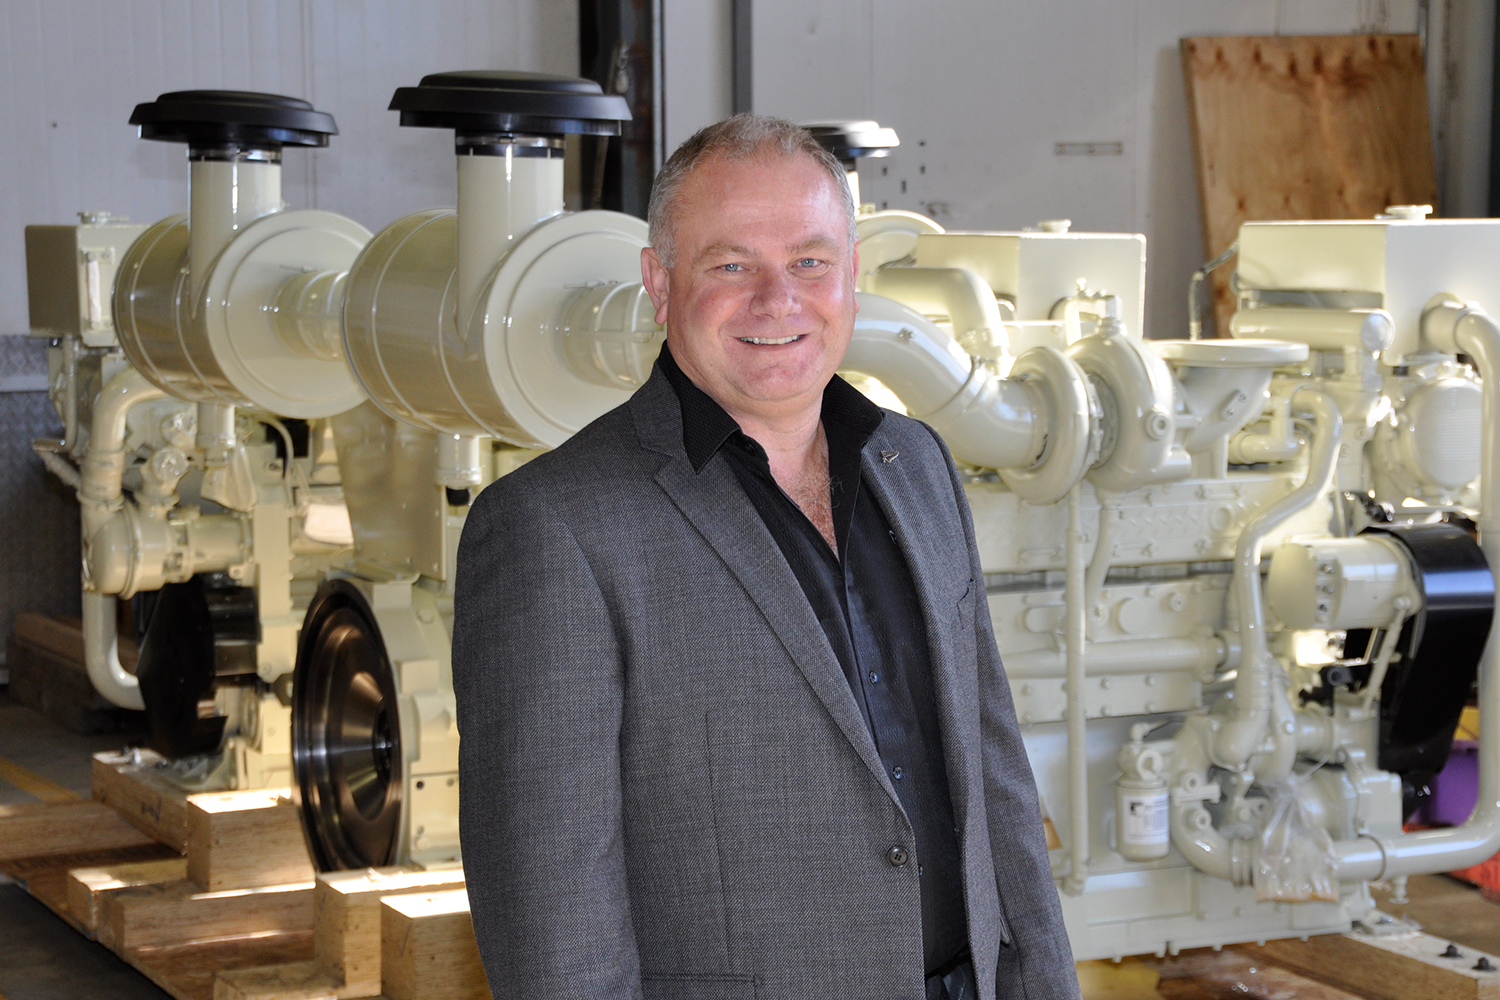 Steve SullivanFounder / Managing Director - Steve has worked in the marine engineering and hydraulic business on the Port of Nelson for over 30 years, starting as a fitter and turner apprentice with Nalder & Biddle. Steve worked his way up to being General Manager at Challenge Marine Ltd, growing the company from a small jobbing workshop to a key player in marine engineering in the early 2000's.Post Challenge Steve has co-owned and owned a number of successful Hydraulic and Engineering companies. Steve had the vision to purchase 50% share of the Aimex business in Port Nelson, which specialised in Automotive engineering and had a staff level of six. Forging on Steve changed the focus from automotive to marine engineering.Specialising in the sales and service of the Rapp Hydema products, Steve heads the team assigned to represent these brands in both New Zealand and Australia adding to the marine engineering focus. Over the years from 2009 when the business was created he has added a number of new services and disciplines to the organisation. Steve has been involved in a number of new vessel builds and brings a wealth of not only hydraulic and engineering, but solid commercial acumen to the business, which has underpinned the success of the wider Aimex group of companies to date.